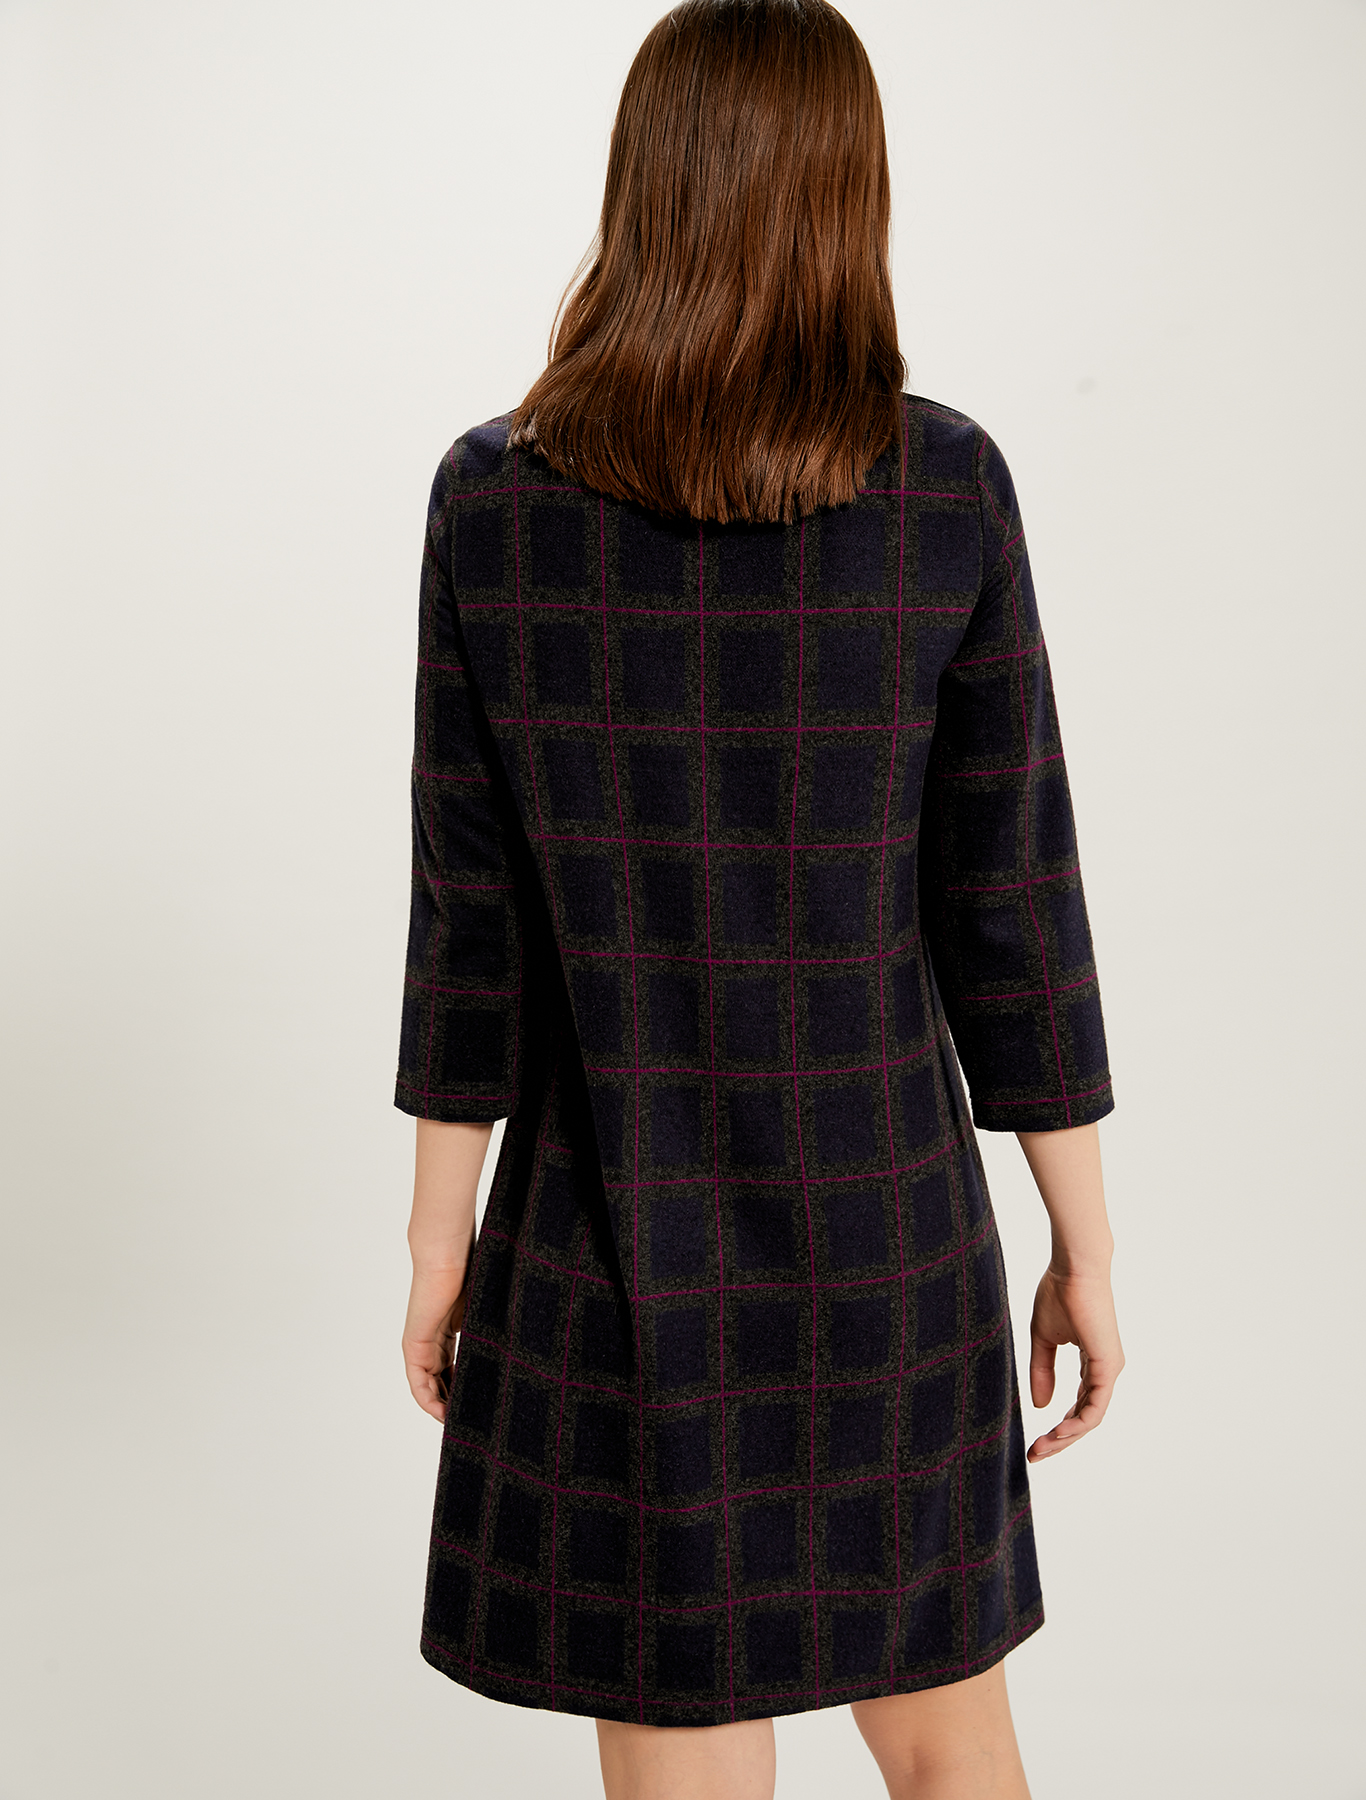 Jacquard jersey dress - navy blue pattern - pennyblack